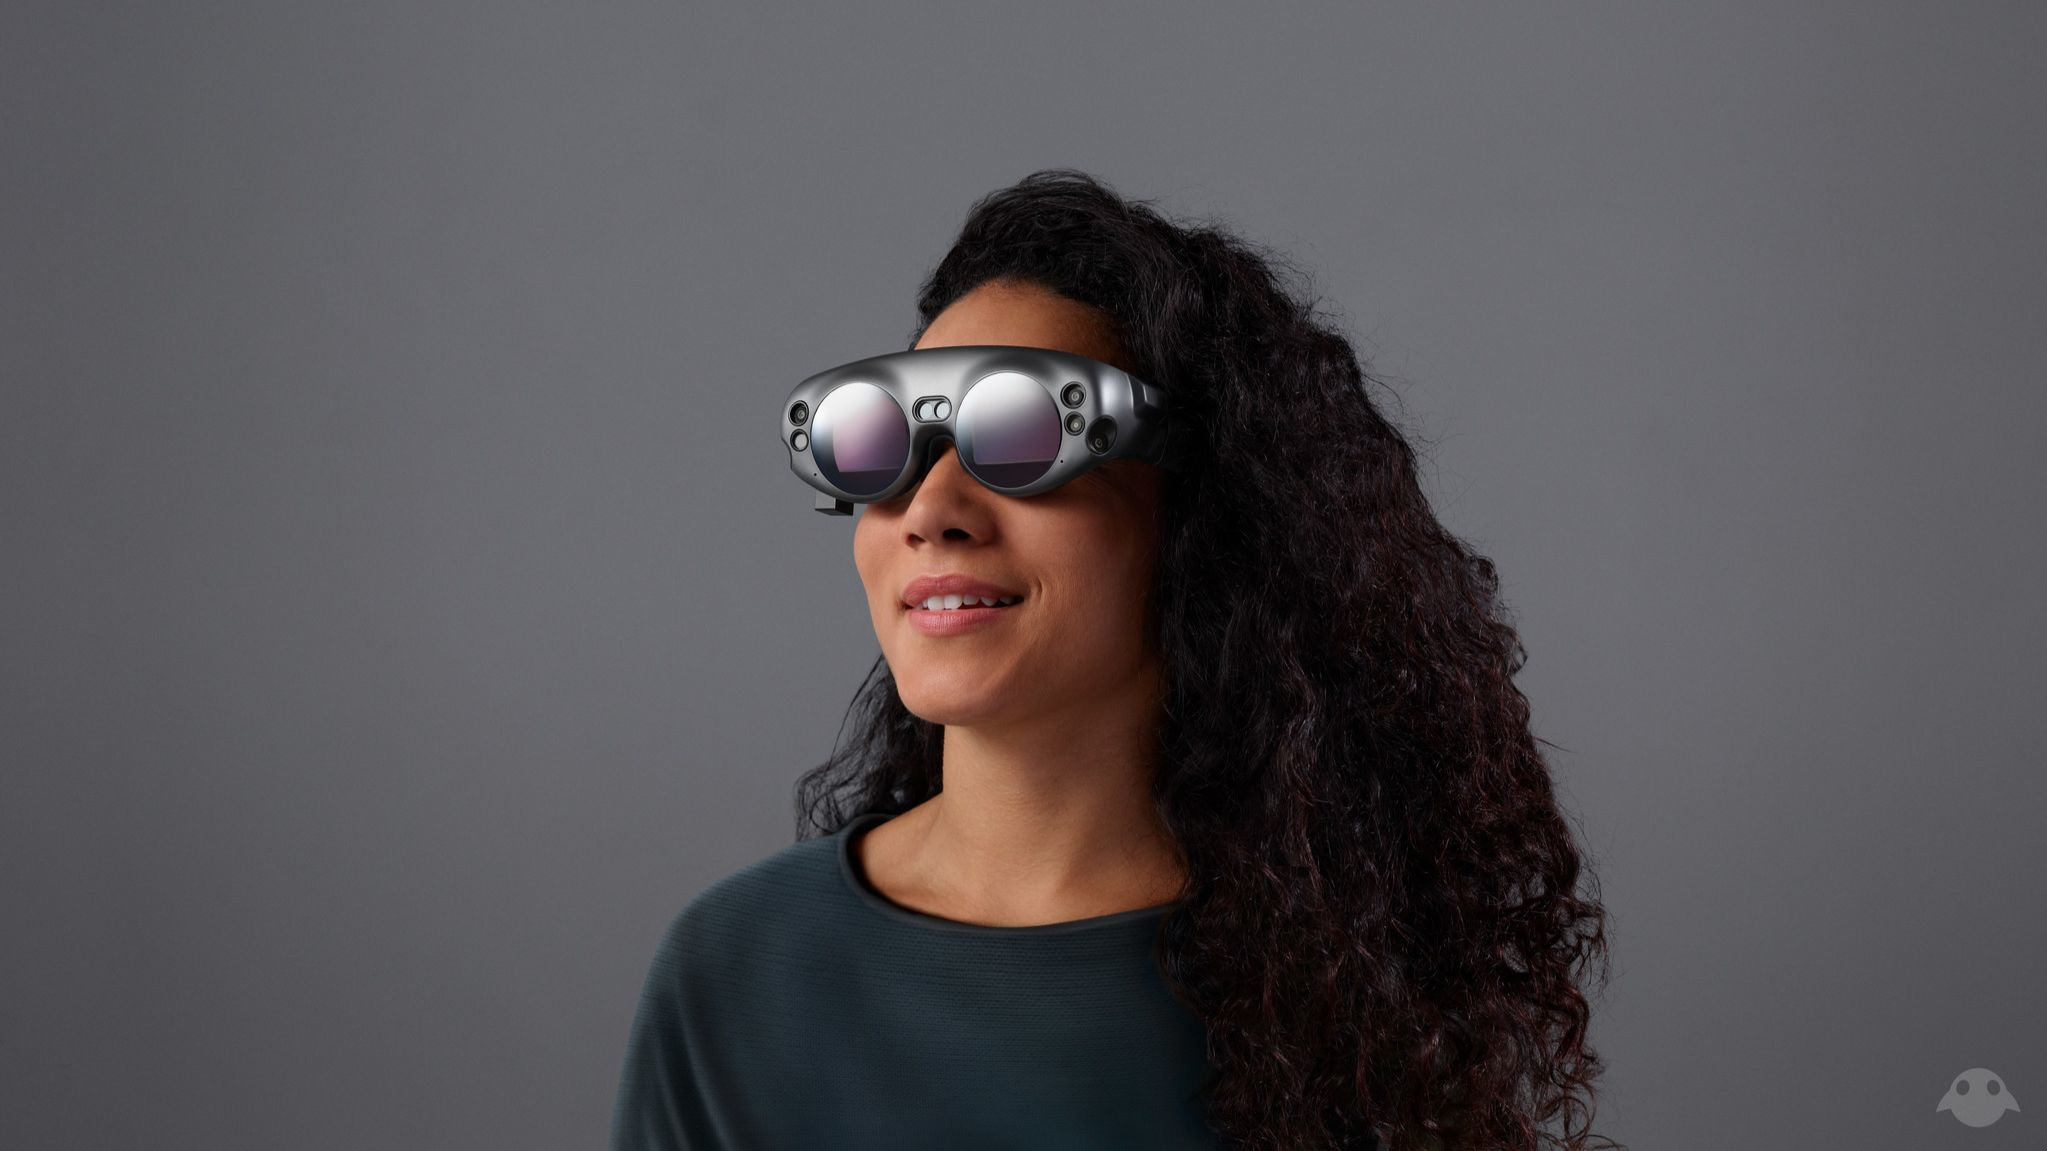 Magic Leap raises another $280 million, and is looking for more